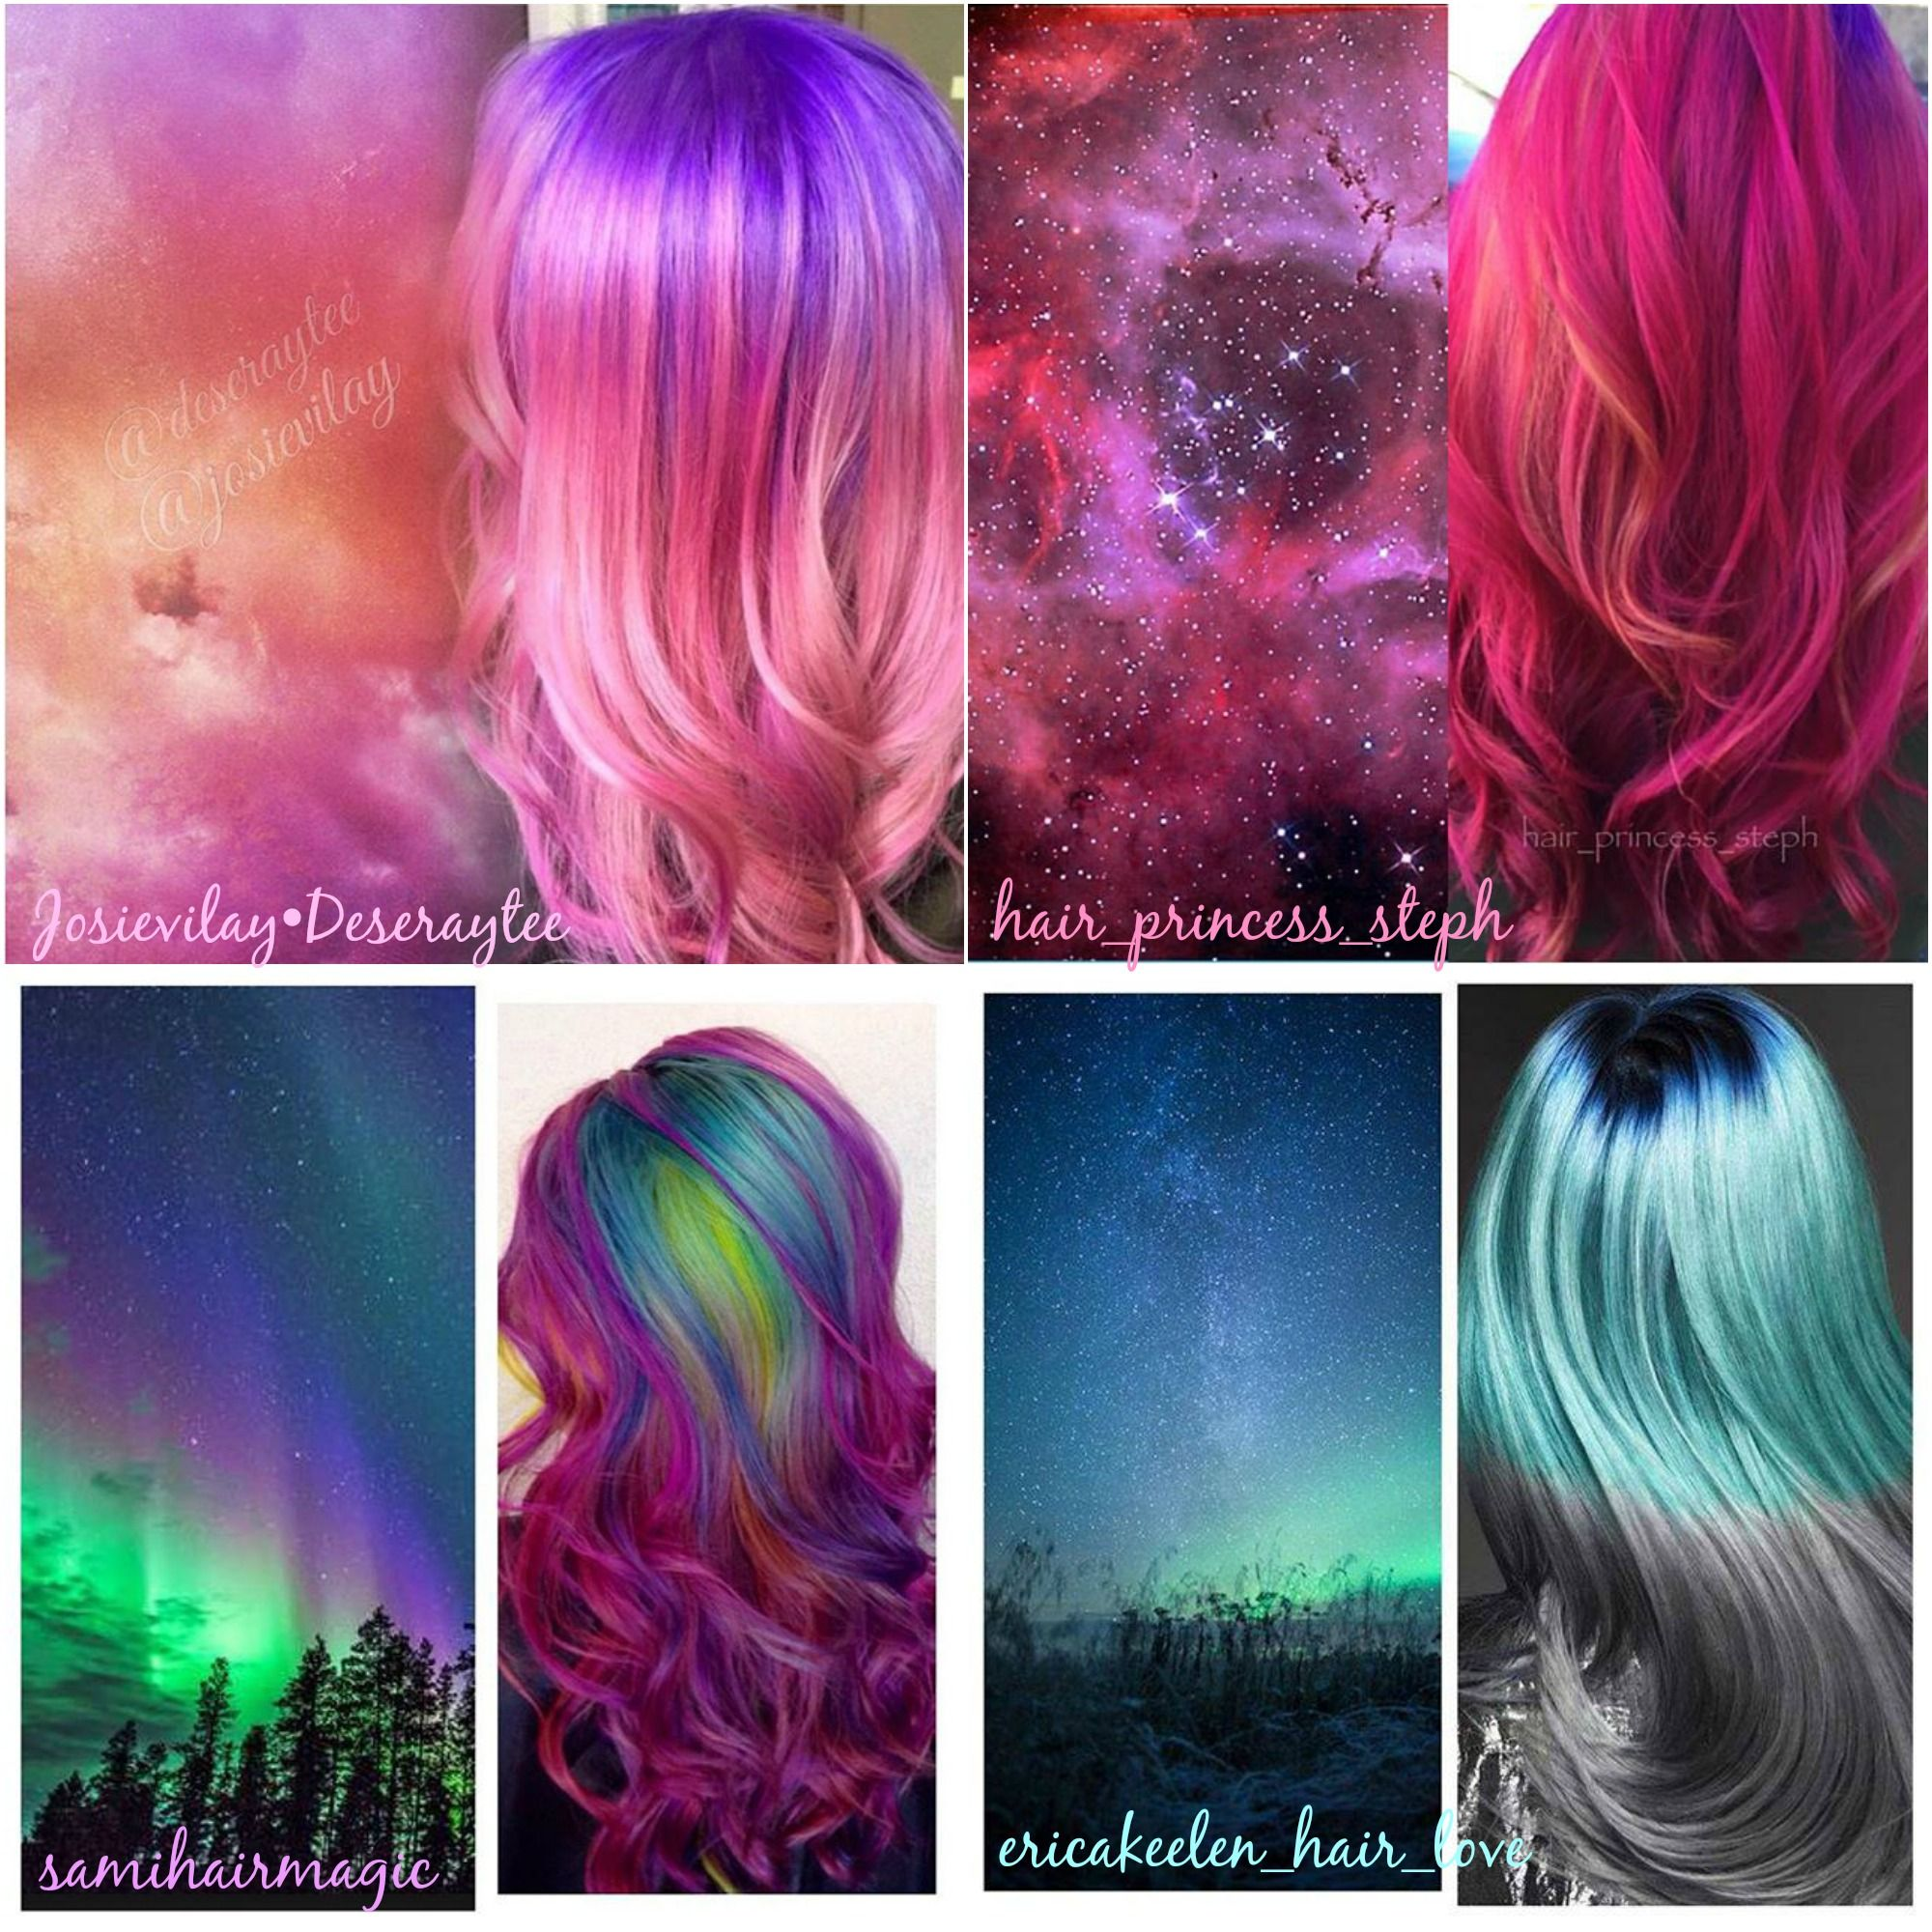 Space Hair Color collage. Hair color Inspirations hotonbeauty.com